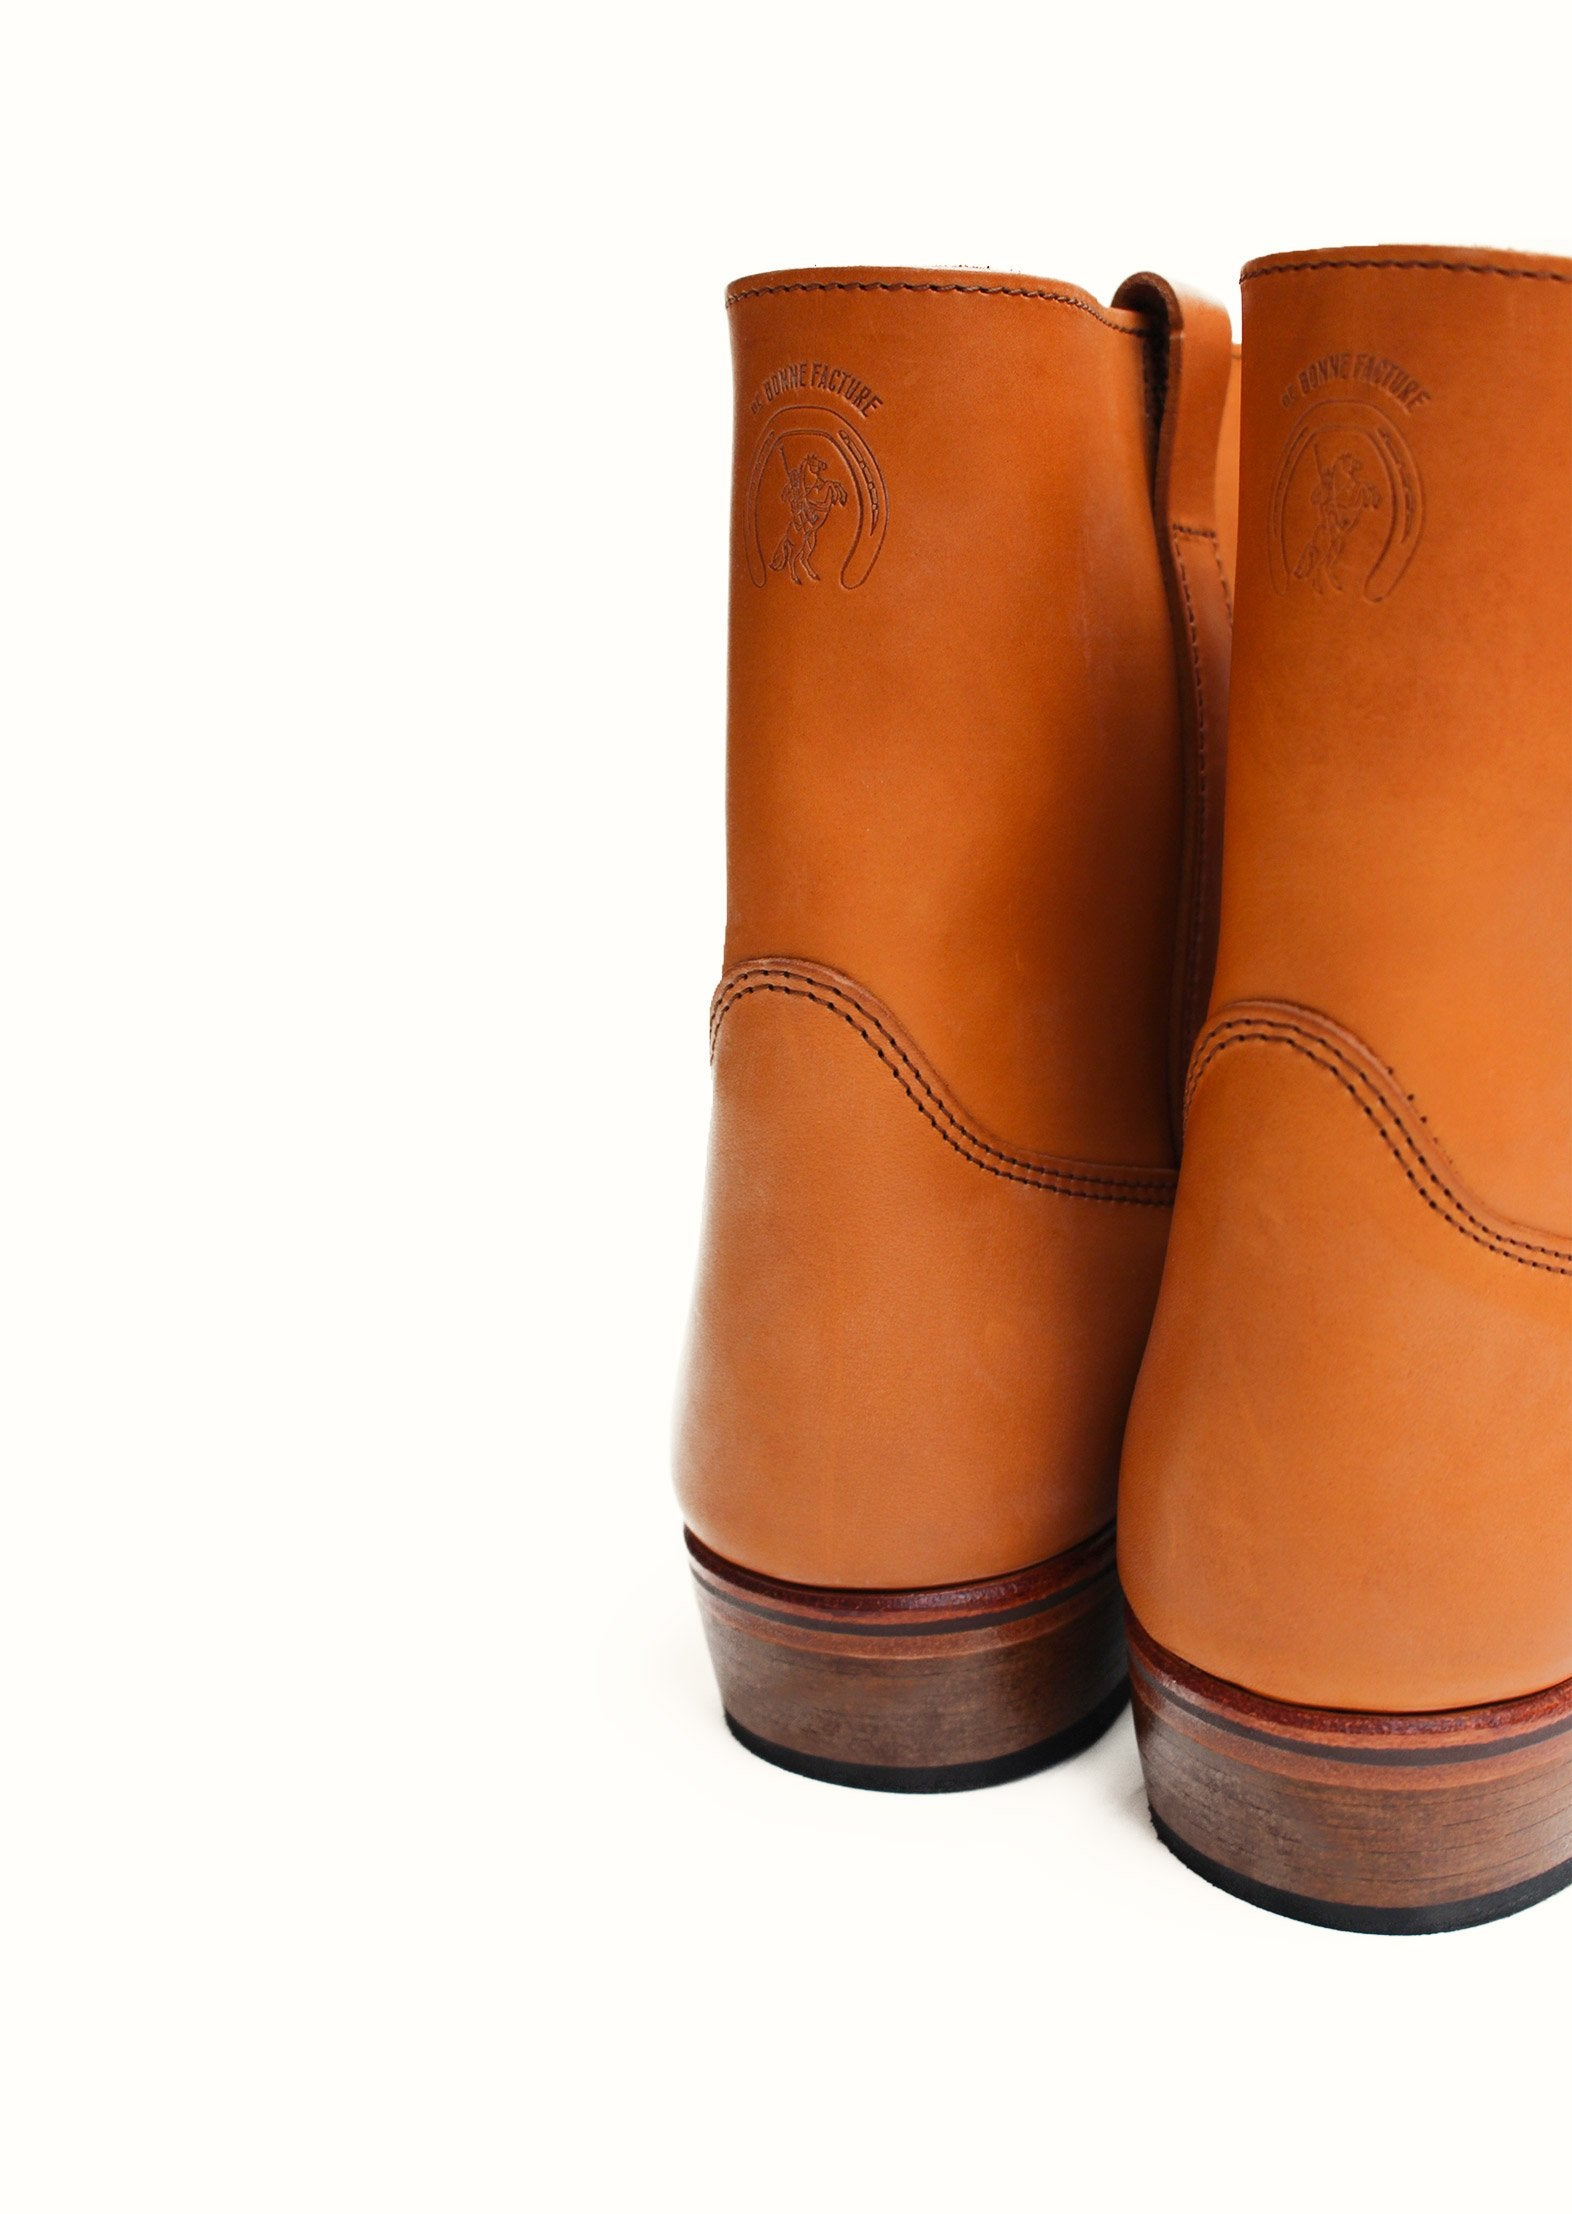 Gardian Boots - Natural full grain calfskin leather - Tan